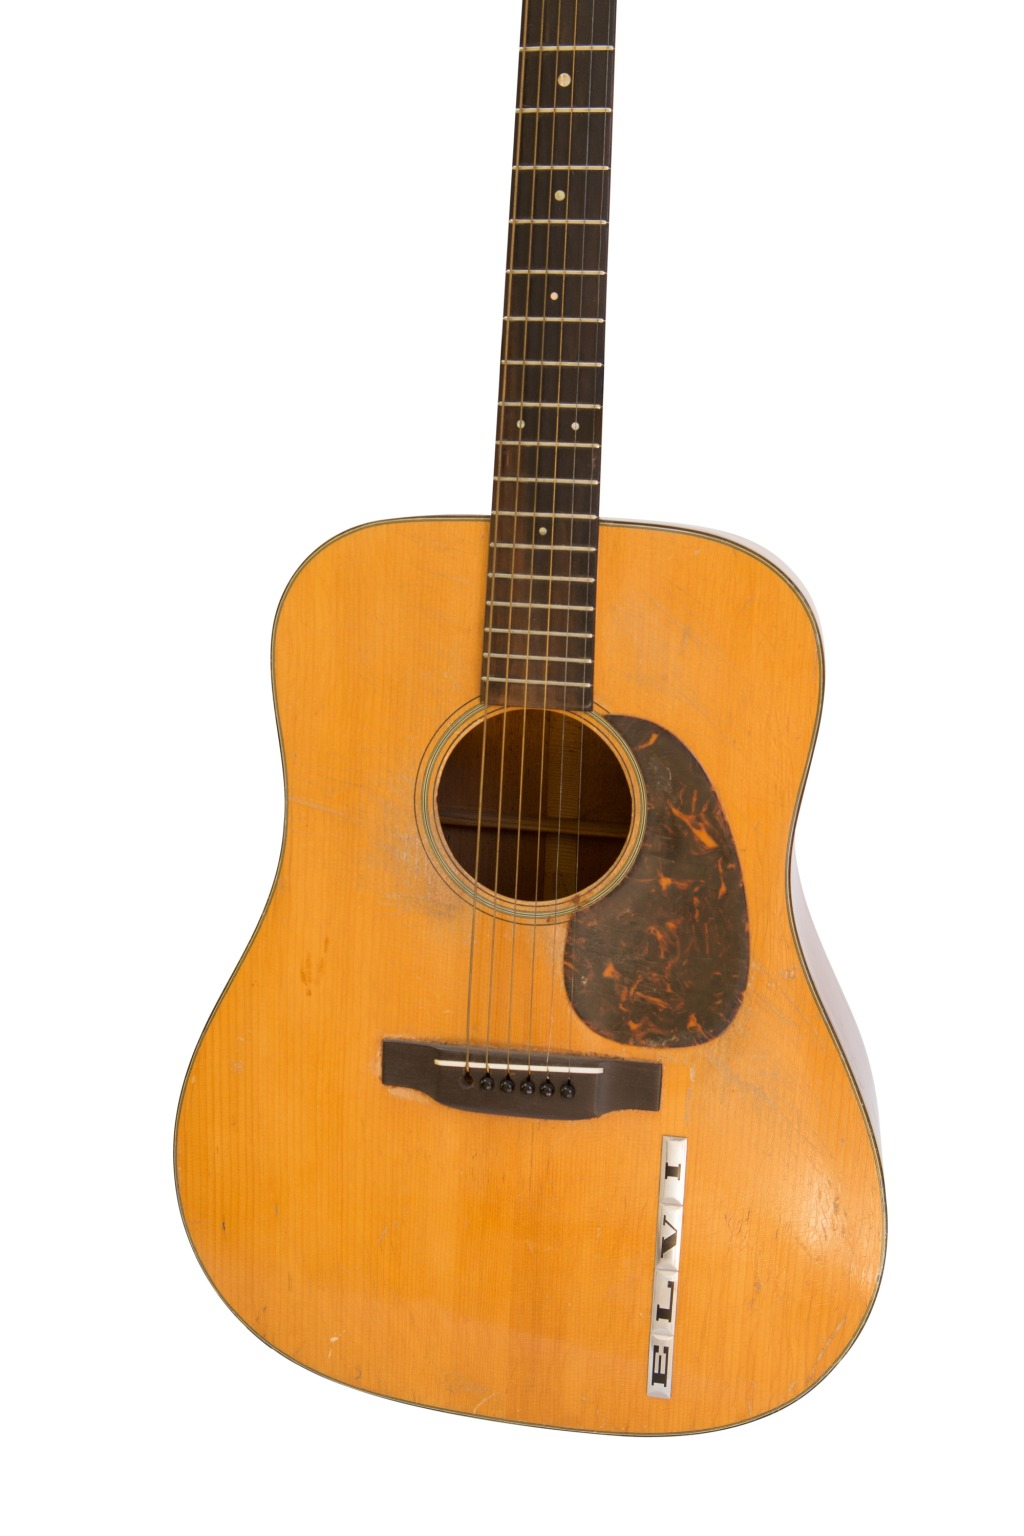 """Built in 1942, this Martin D-18 was used by Elvis Presley when he cut his first records for Sam Phillips and Sun Records in 1955. To make sure everyone knew who owned it, Presley used stick-on lettering, although the """"S"""" has since fallen off."""